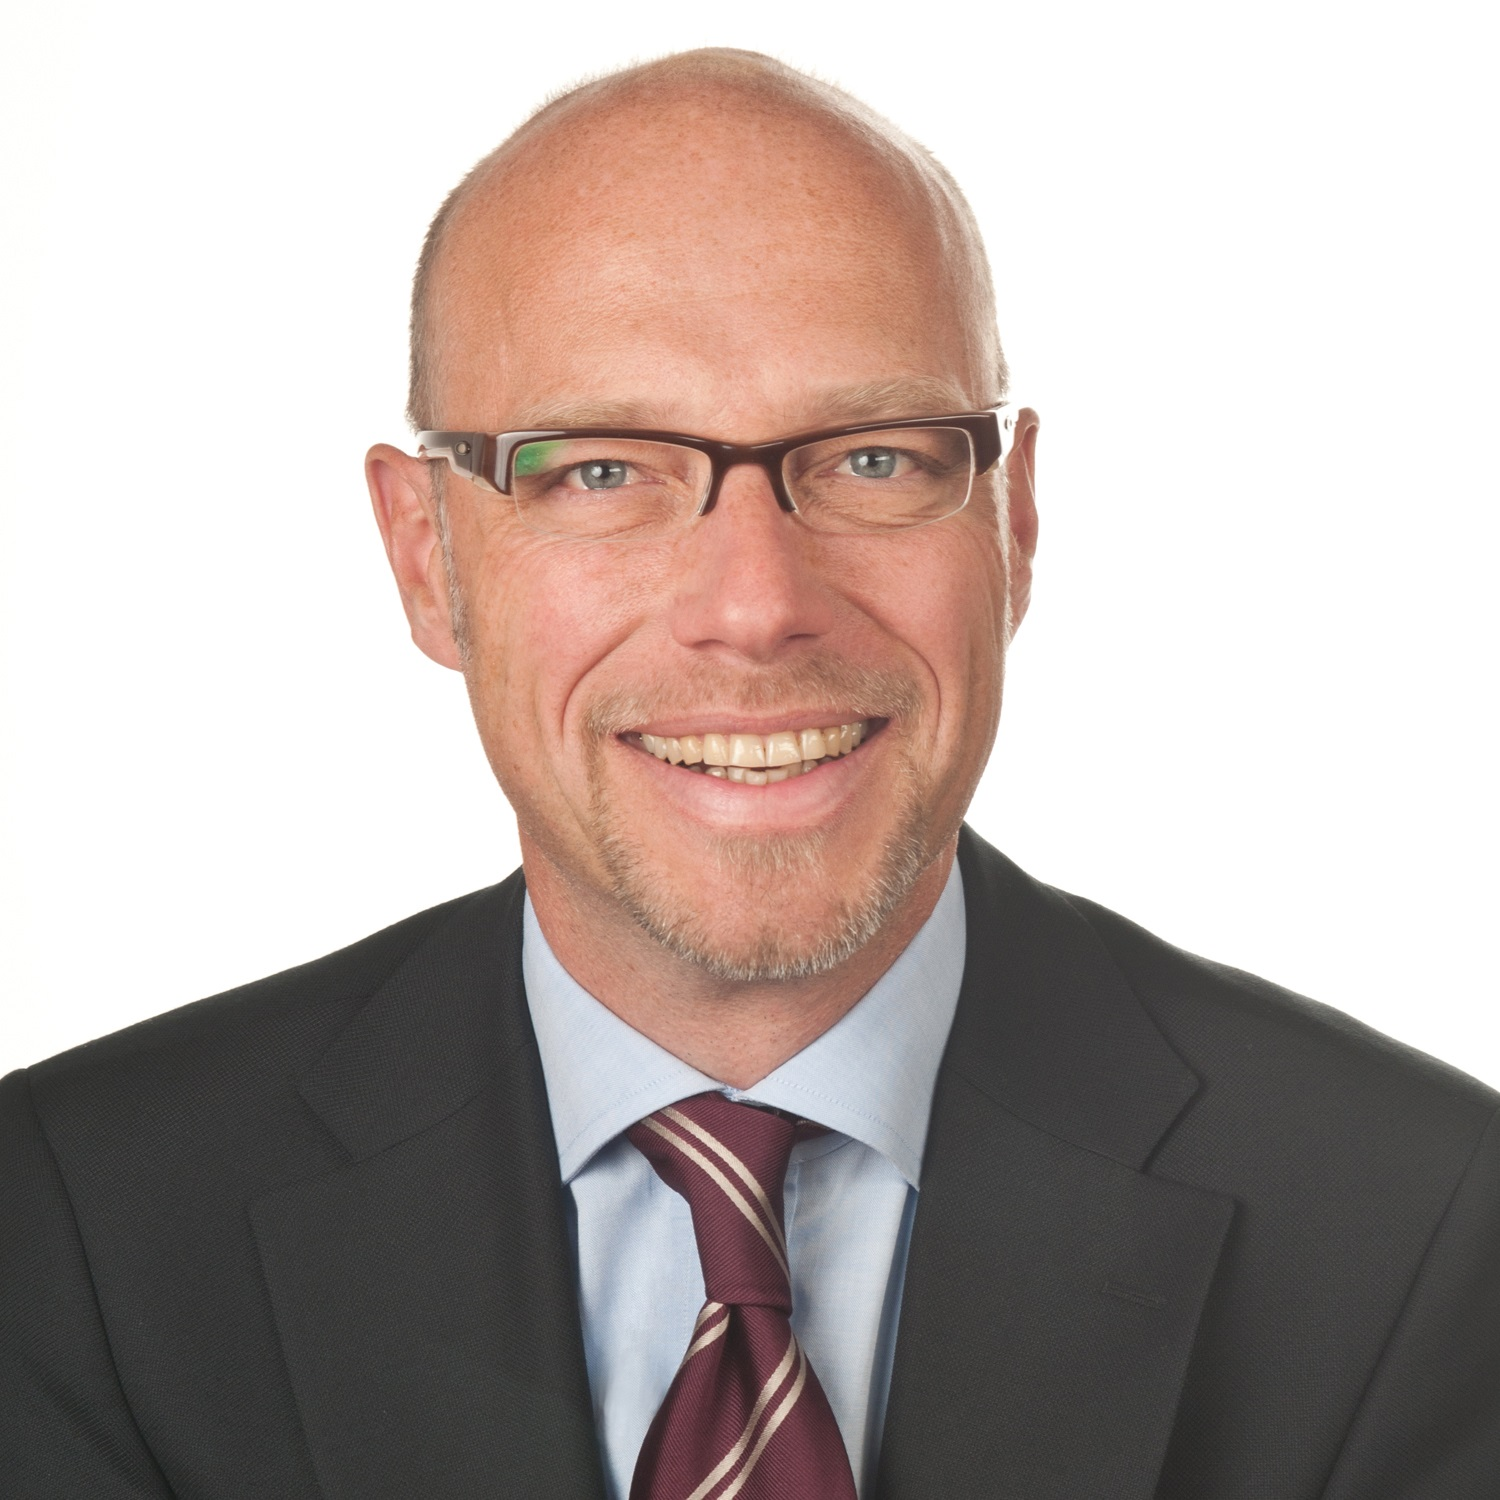 Songwon appoints Joachim Bayer as their new Global Business Manager for Specialty Antioxidants and New Products